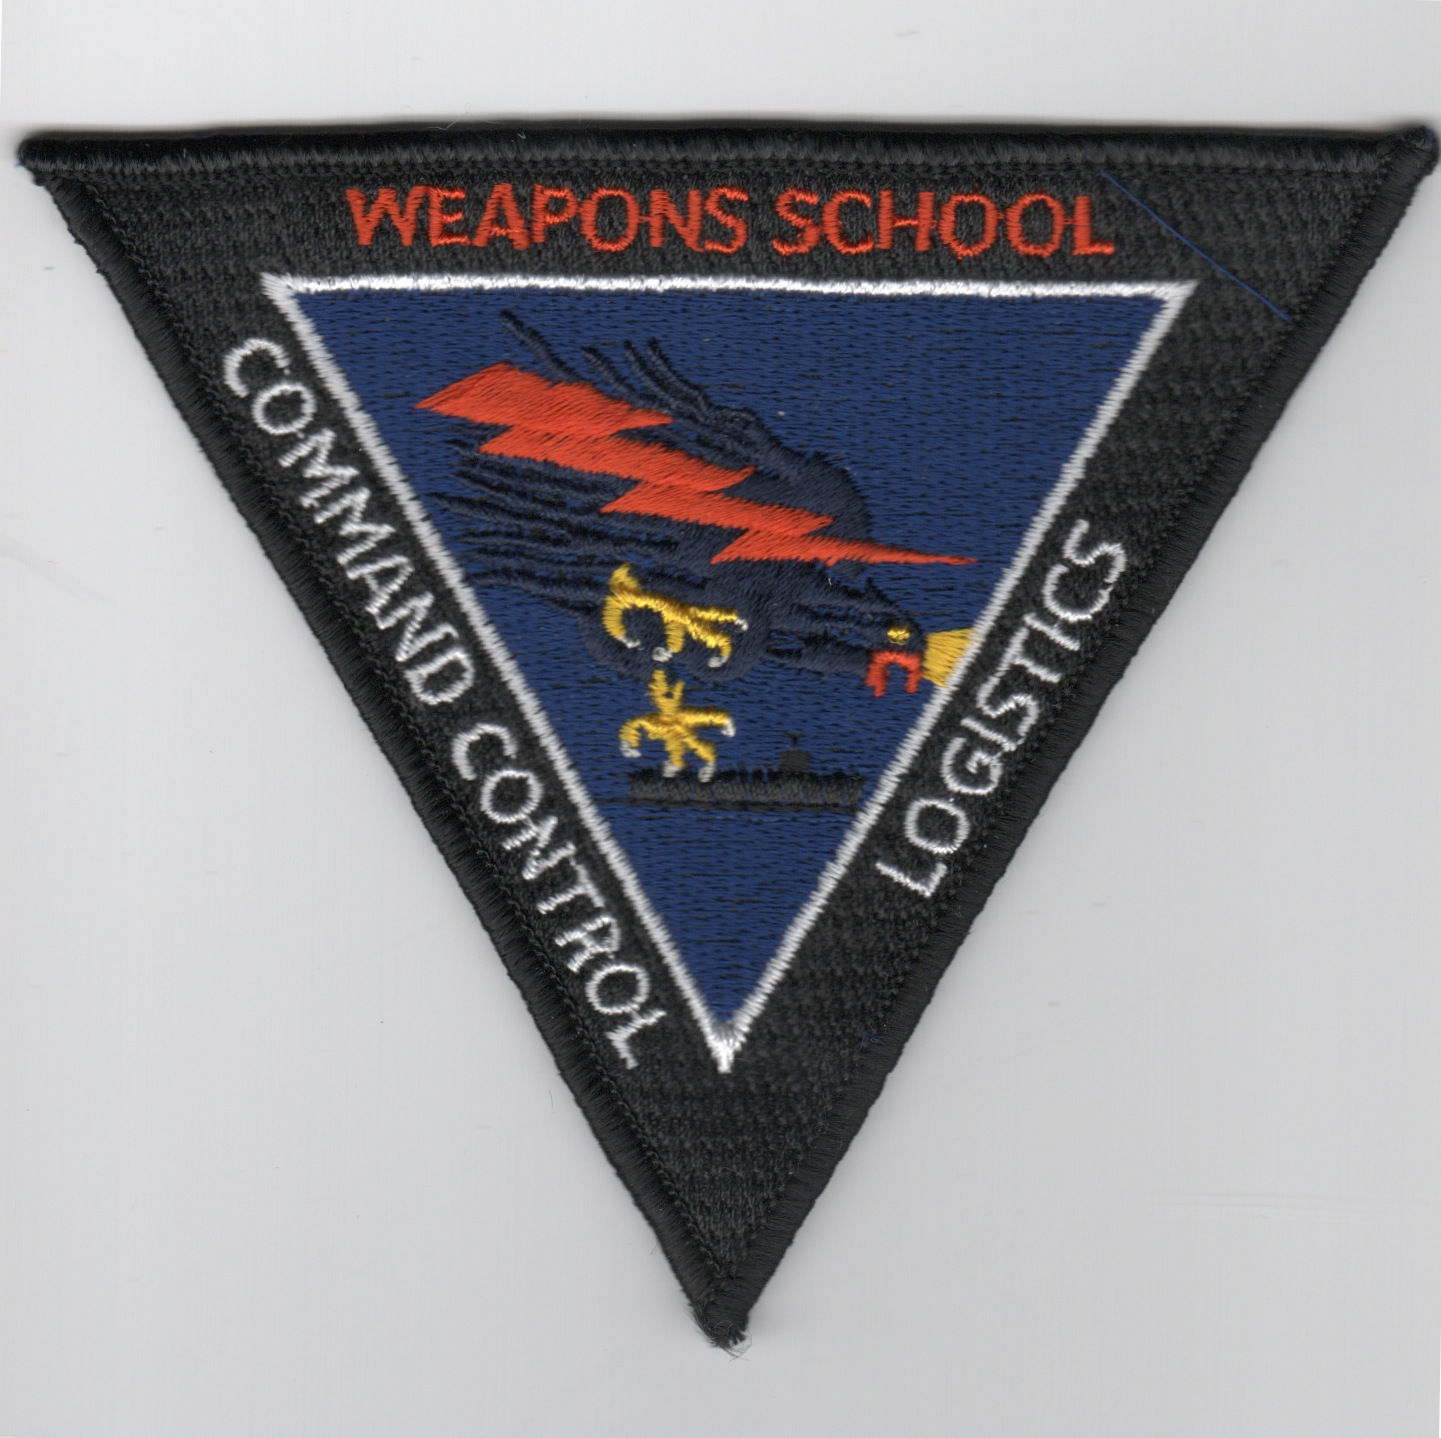 C2 Logistics Weapons School (Tri/Black)